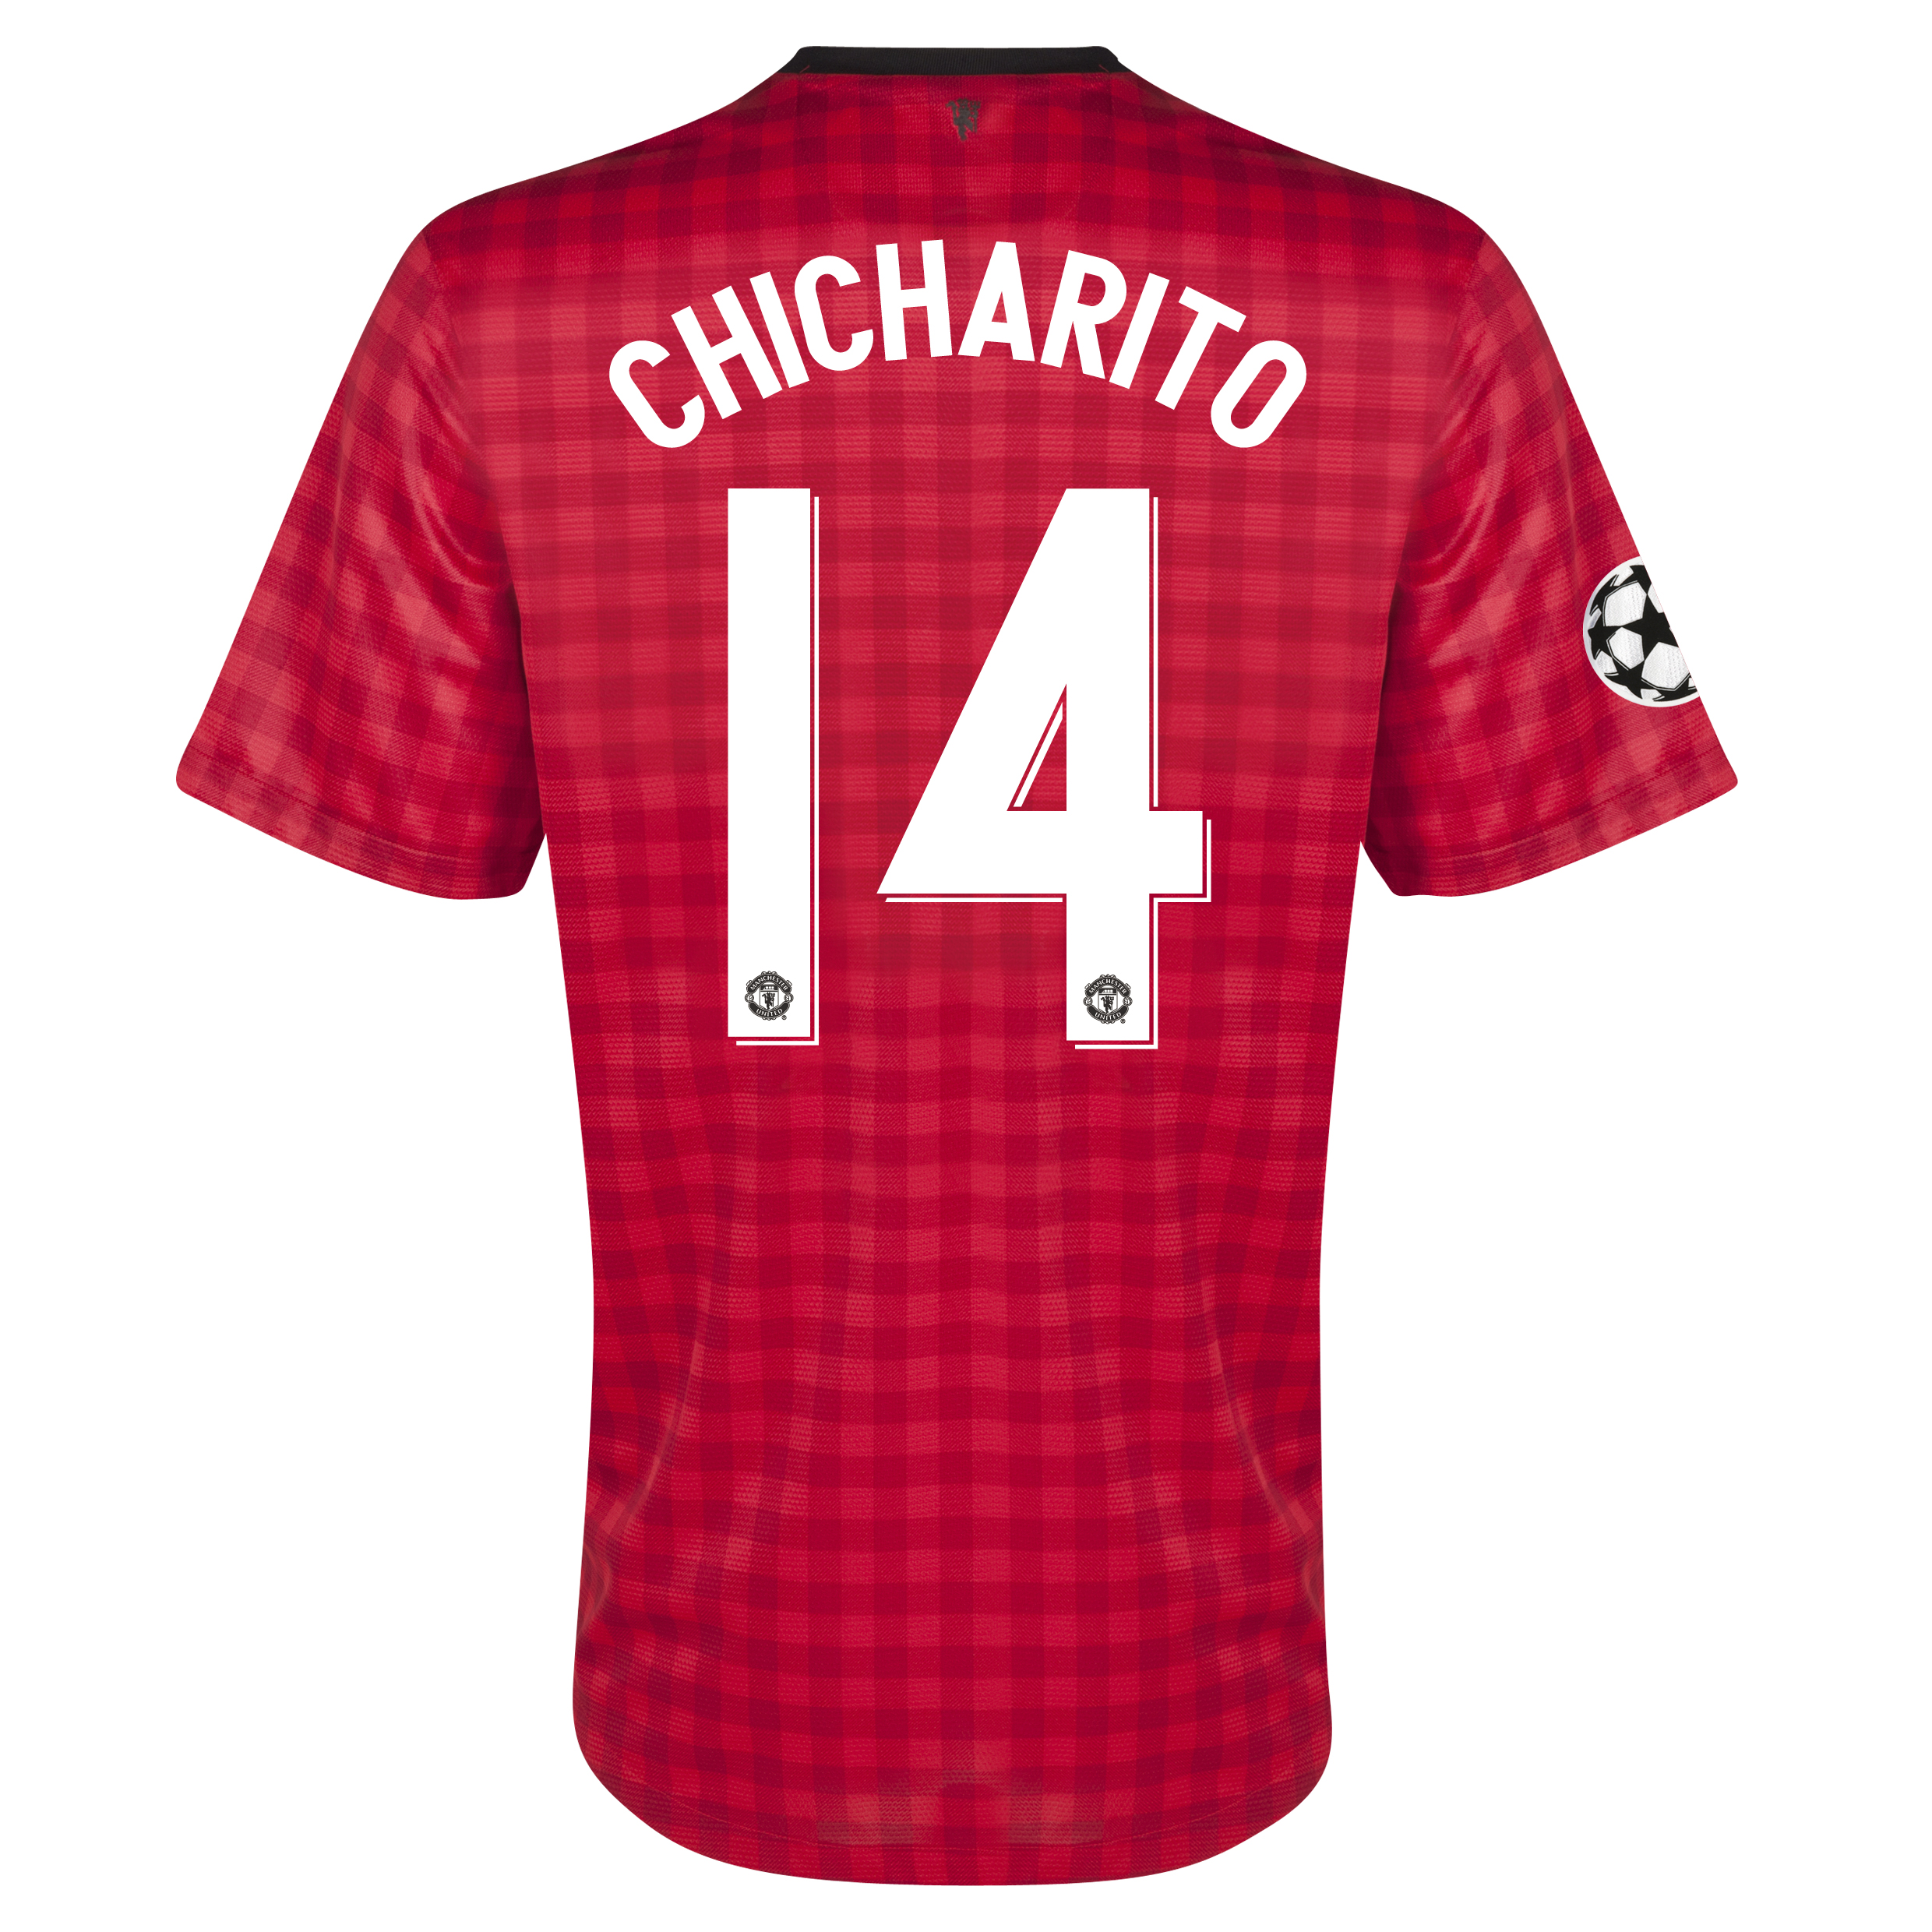 Man United UEFA Champions League Home Shirt 2012/13  - Youths with Chicharito 14 printing